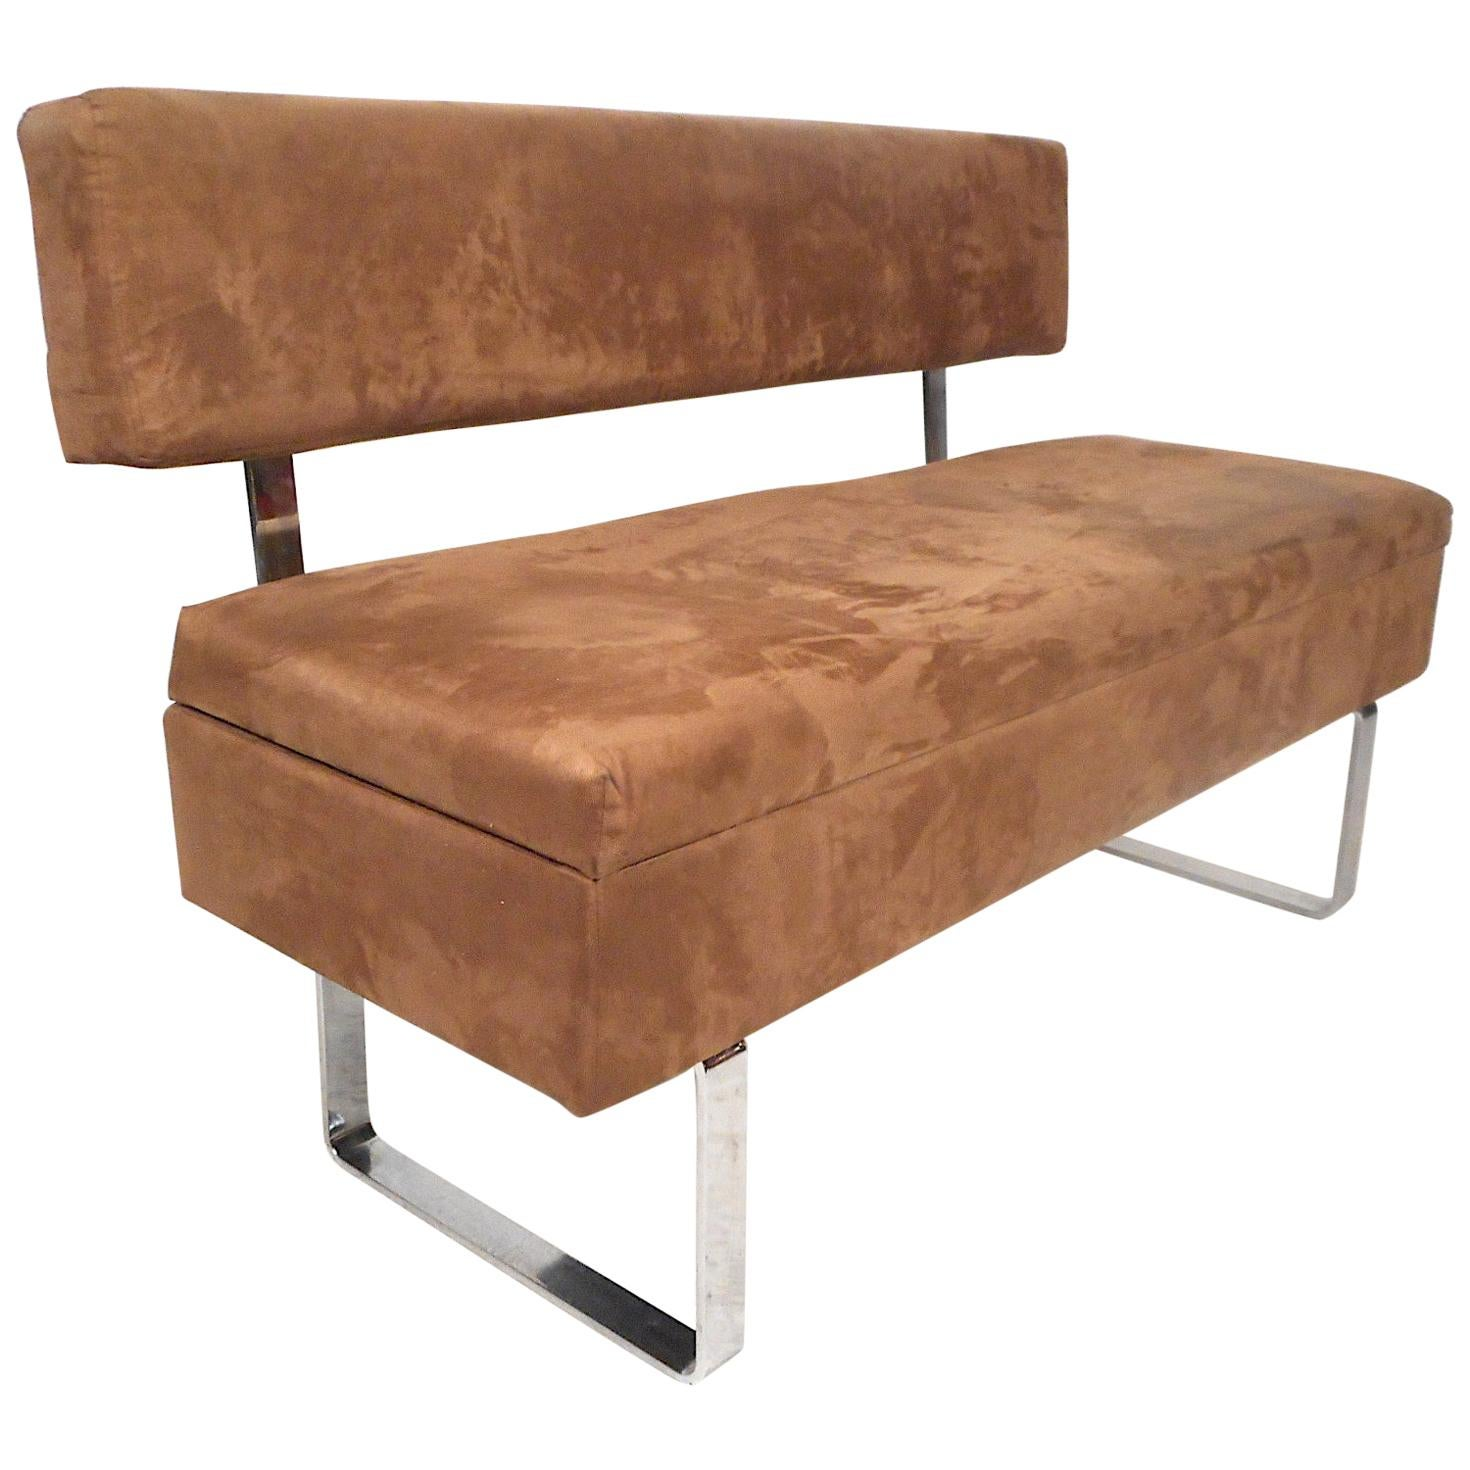 Midcentury Upholstered Bench with Storage Compartment